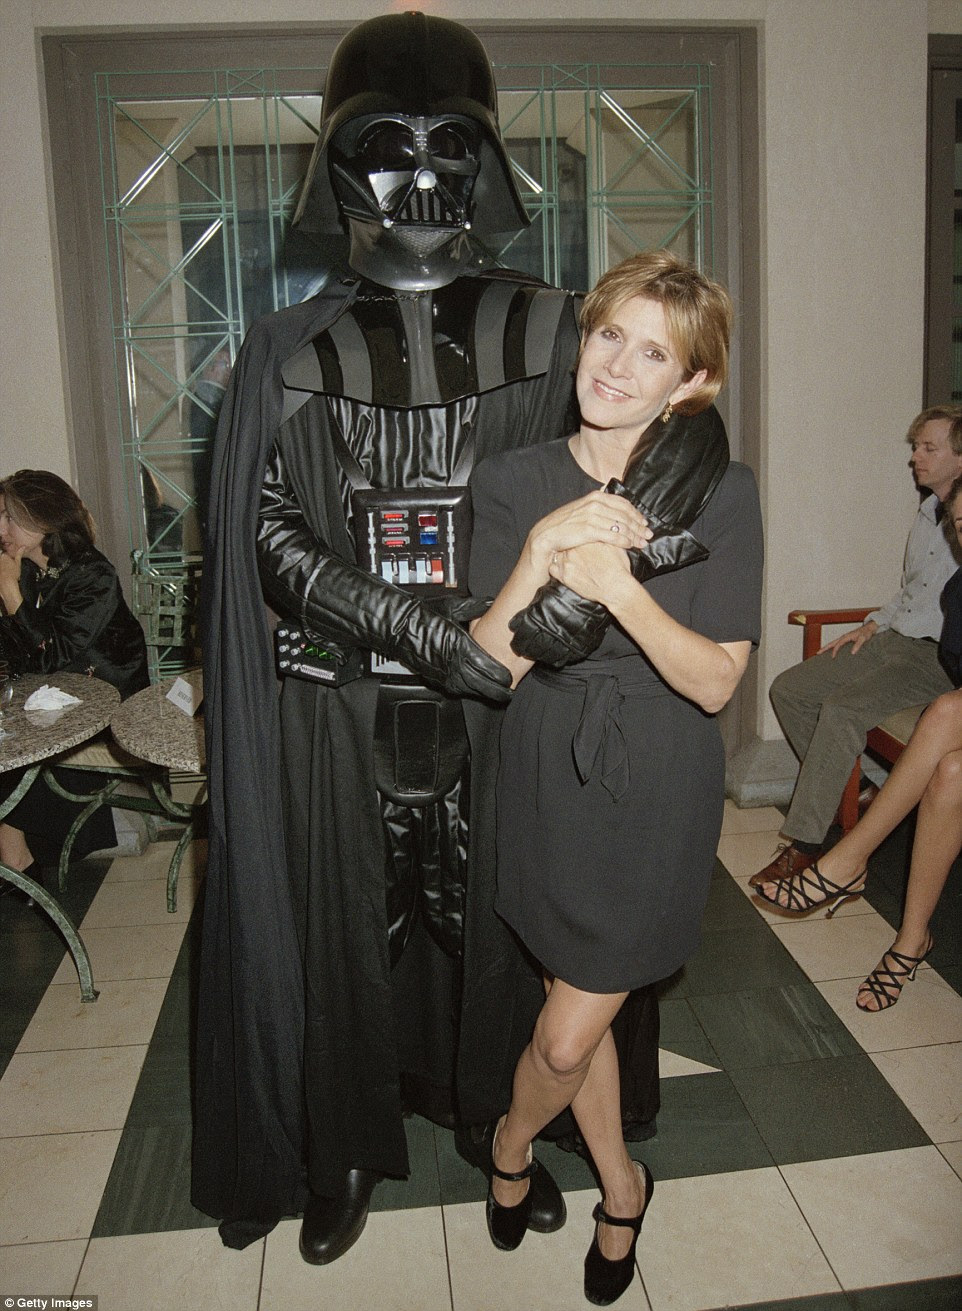 And while she has been successful in other aspects of her life, Star Wars seemed to follow Fisher (pictured in 1995) throughout her life - most recently visual effects were used to bring a young Princess Leia into the newest Star Wars film, Rogue One